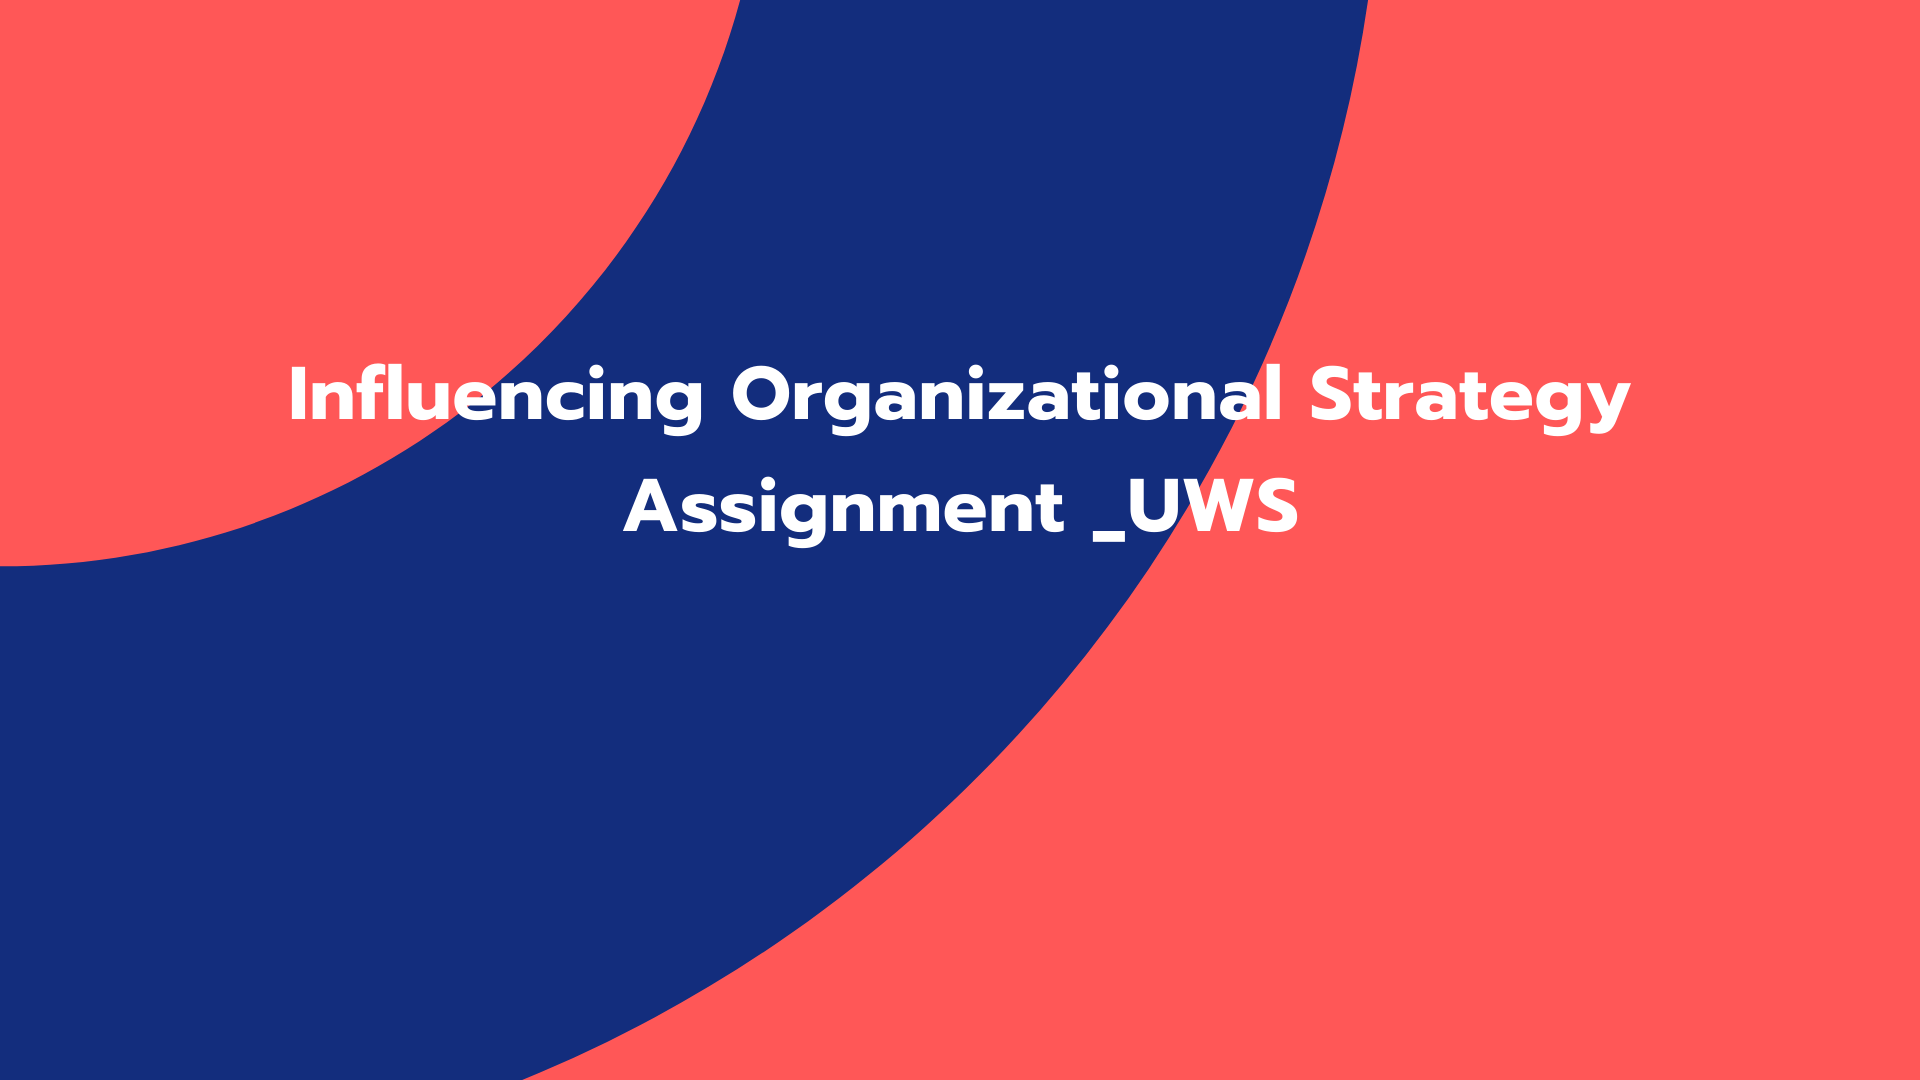 Influencing Organizational Strategy Assignment _UWS